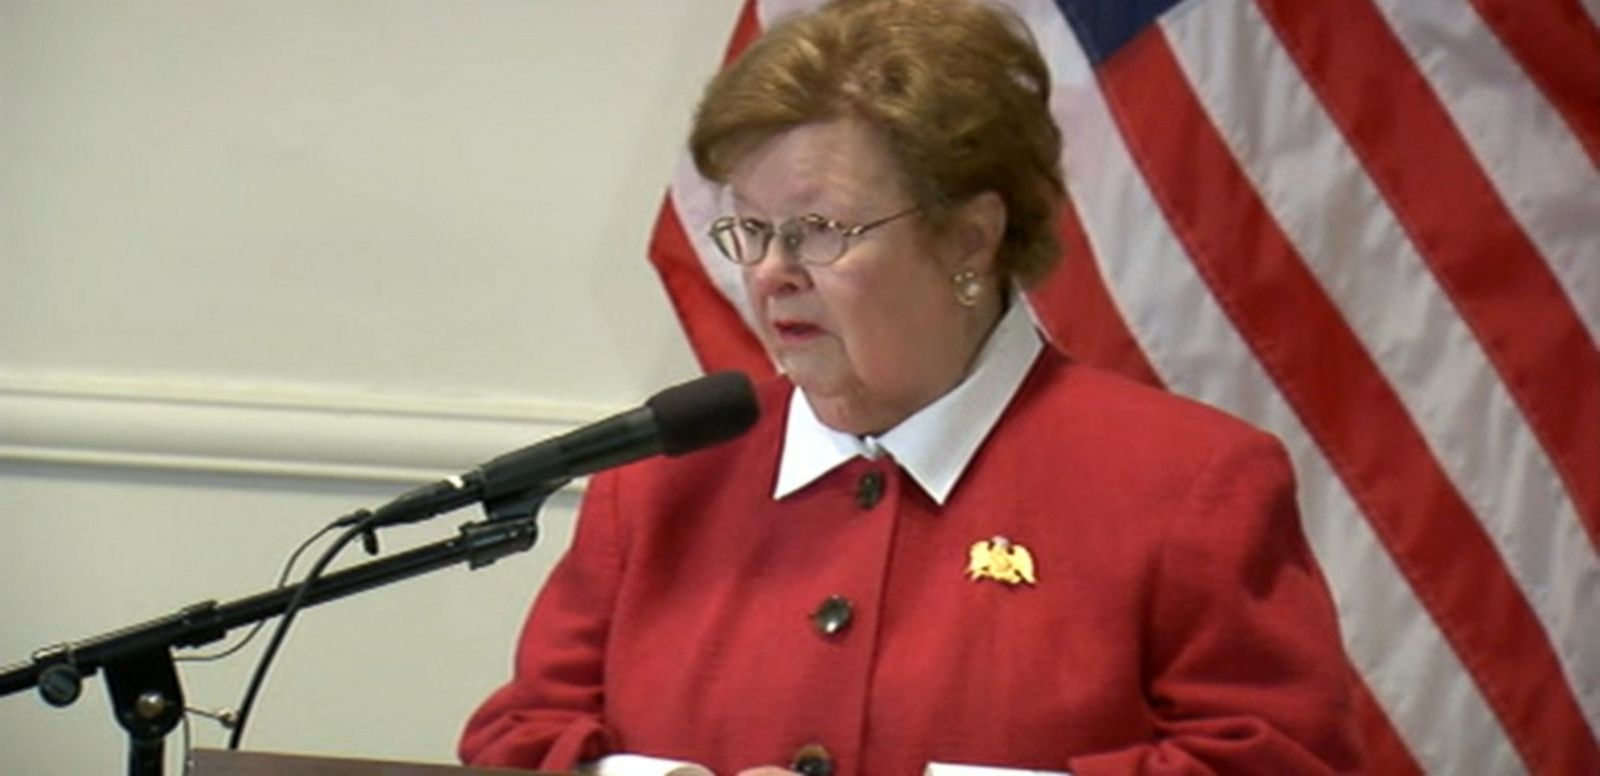 VIDEO: The longest-serving woman in Congress announces her retirement from the U.S. Senate.